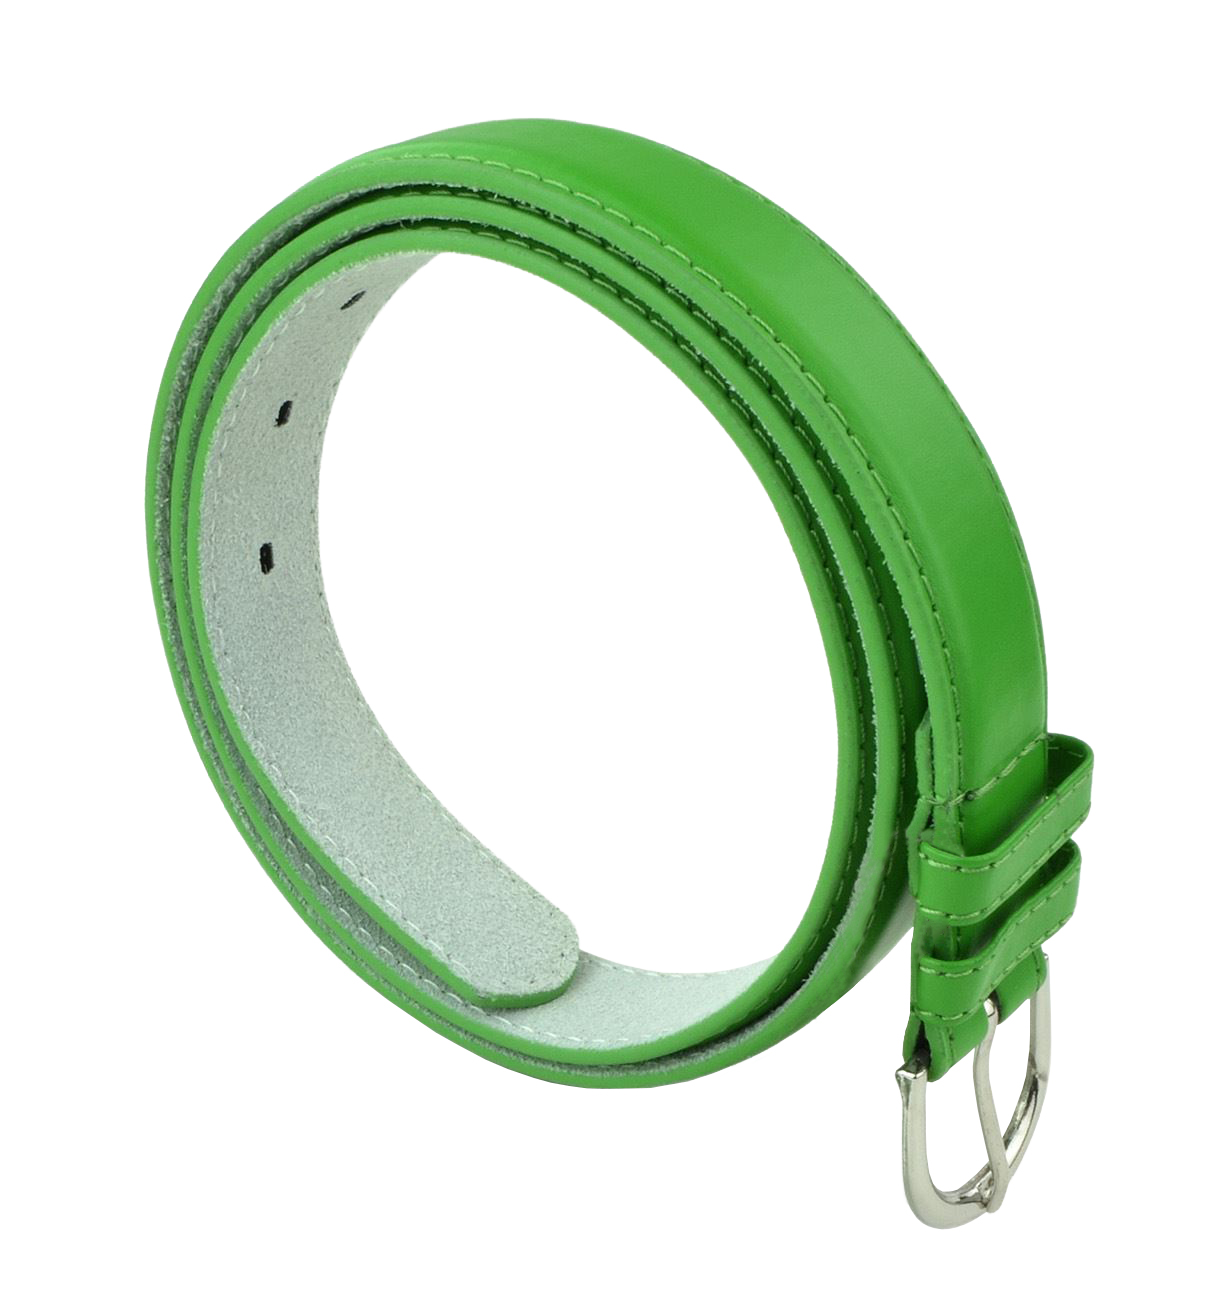 Womens Chic Dress Belt Bonded Leather Polished Buckle - Fd Green Small